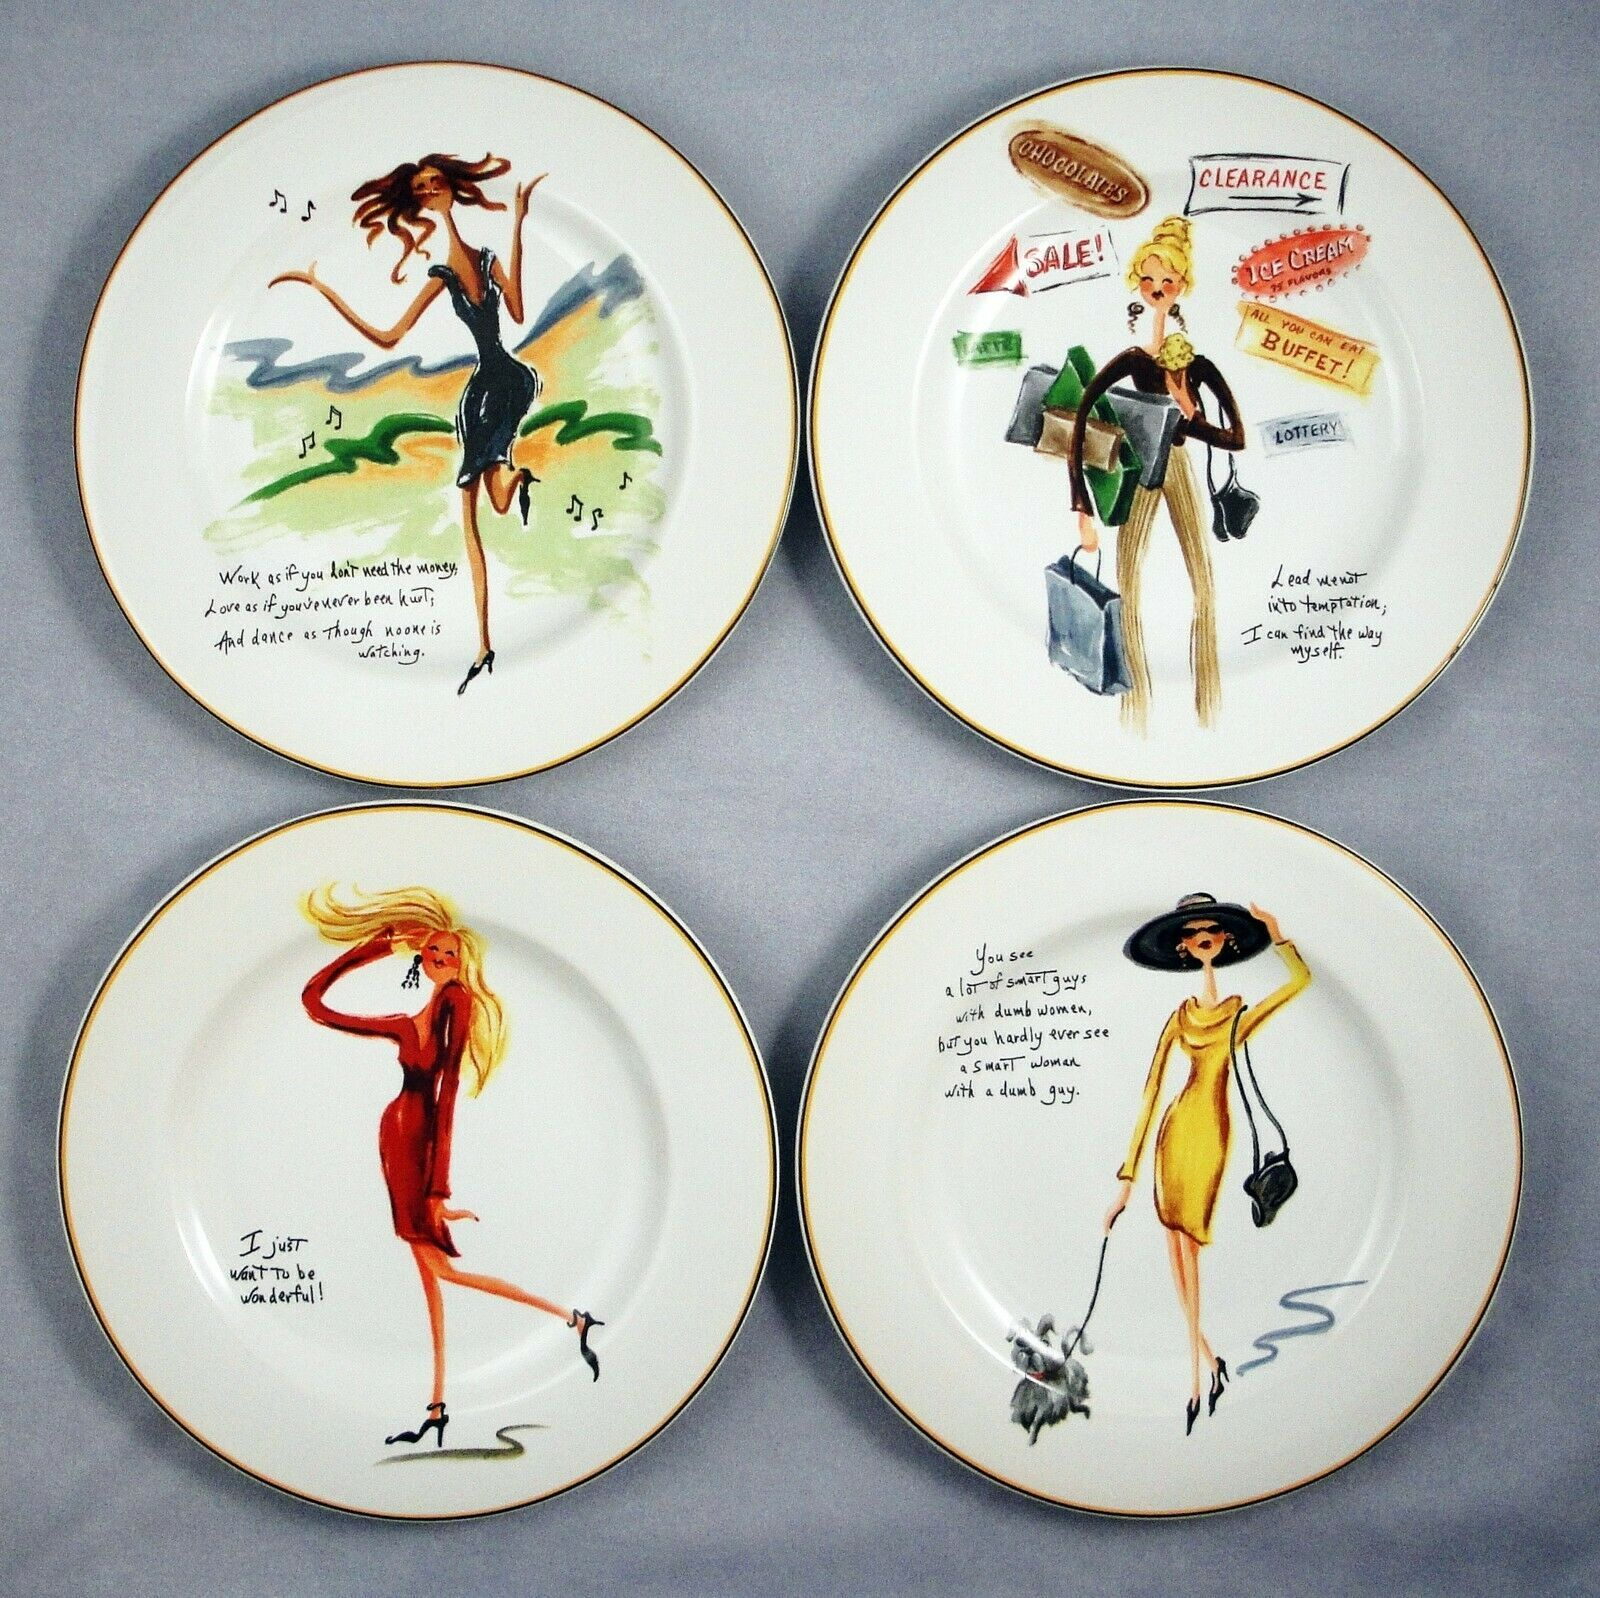 Primary image for Sakura Glamour Girls Dessert Salad Luncheon Plates Sassy Humor Quotes Set of 4